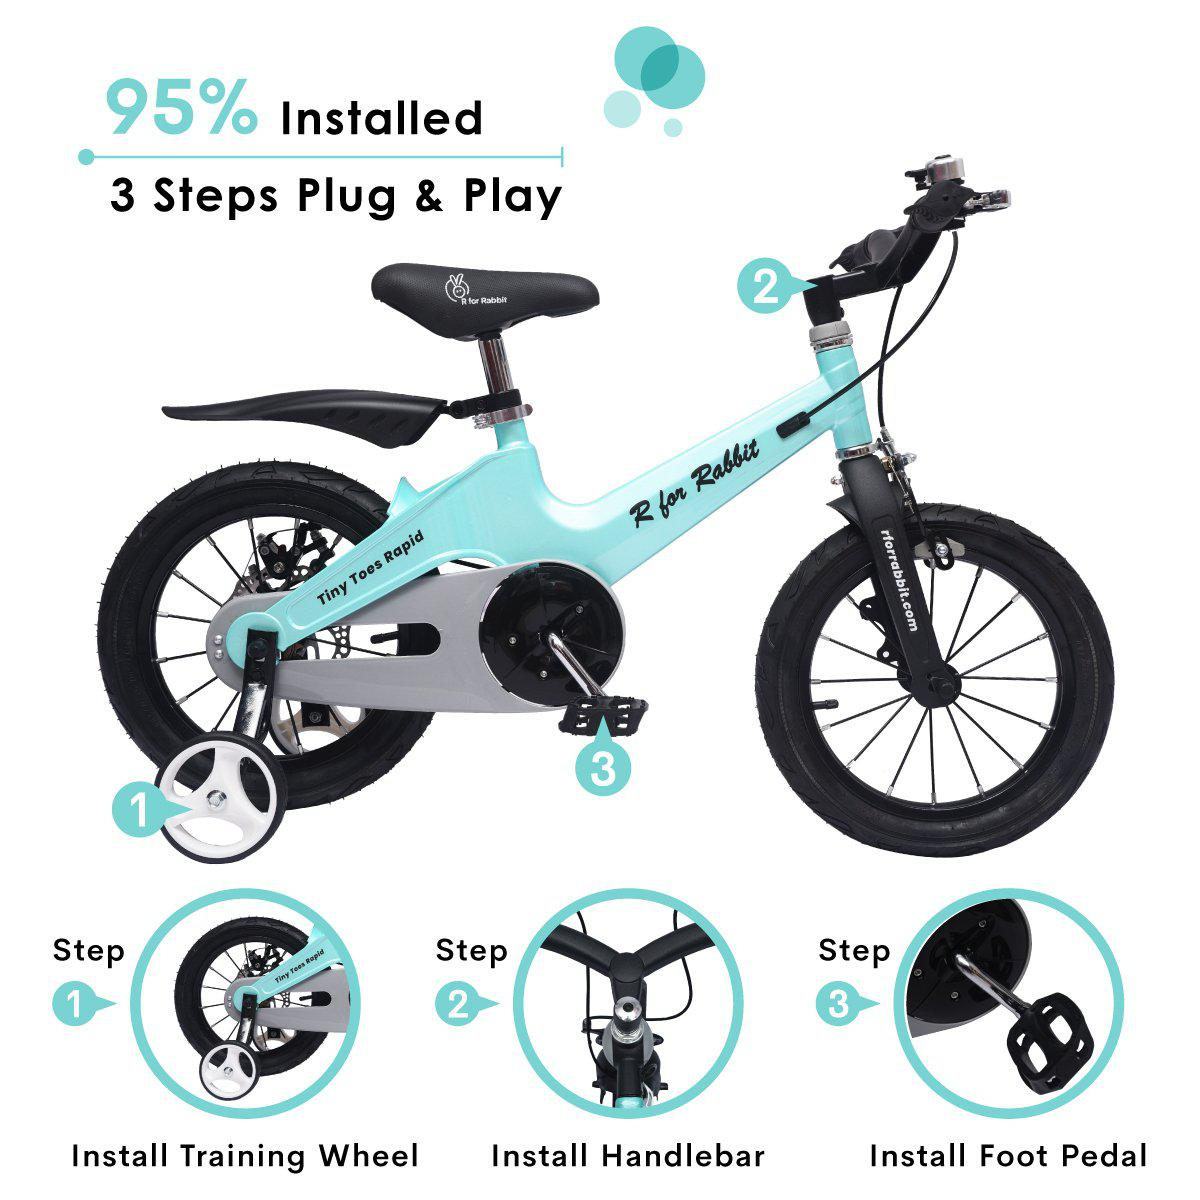 R for Rabbit Tiny Toes Rapid- The 14 Inch Smart Plug and Play Bicycle for Kids